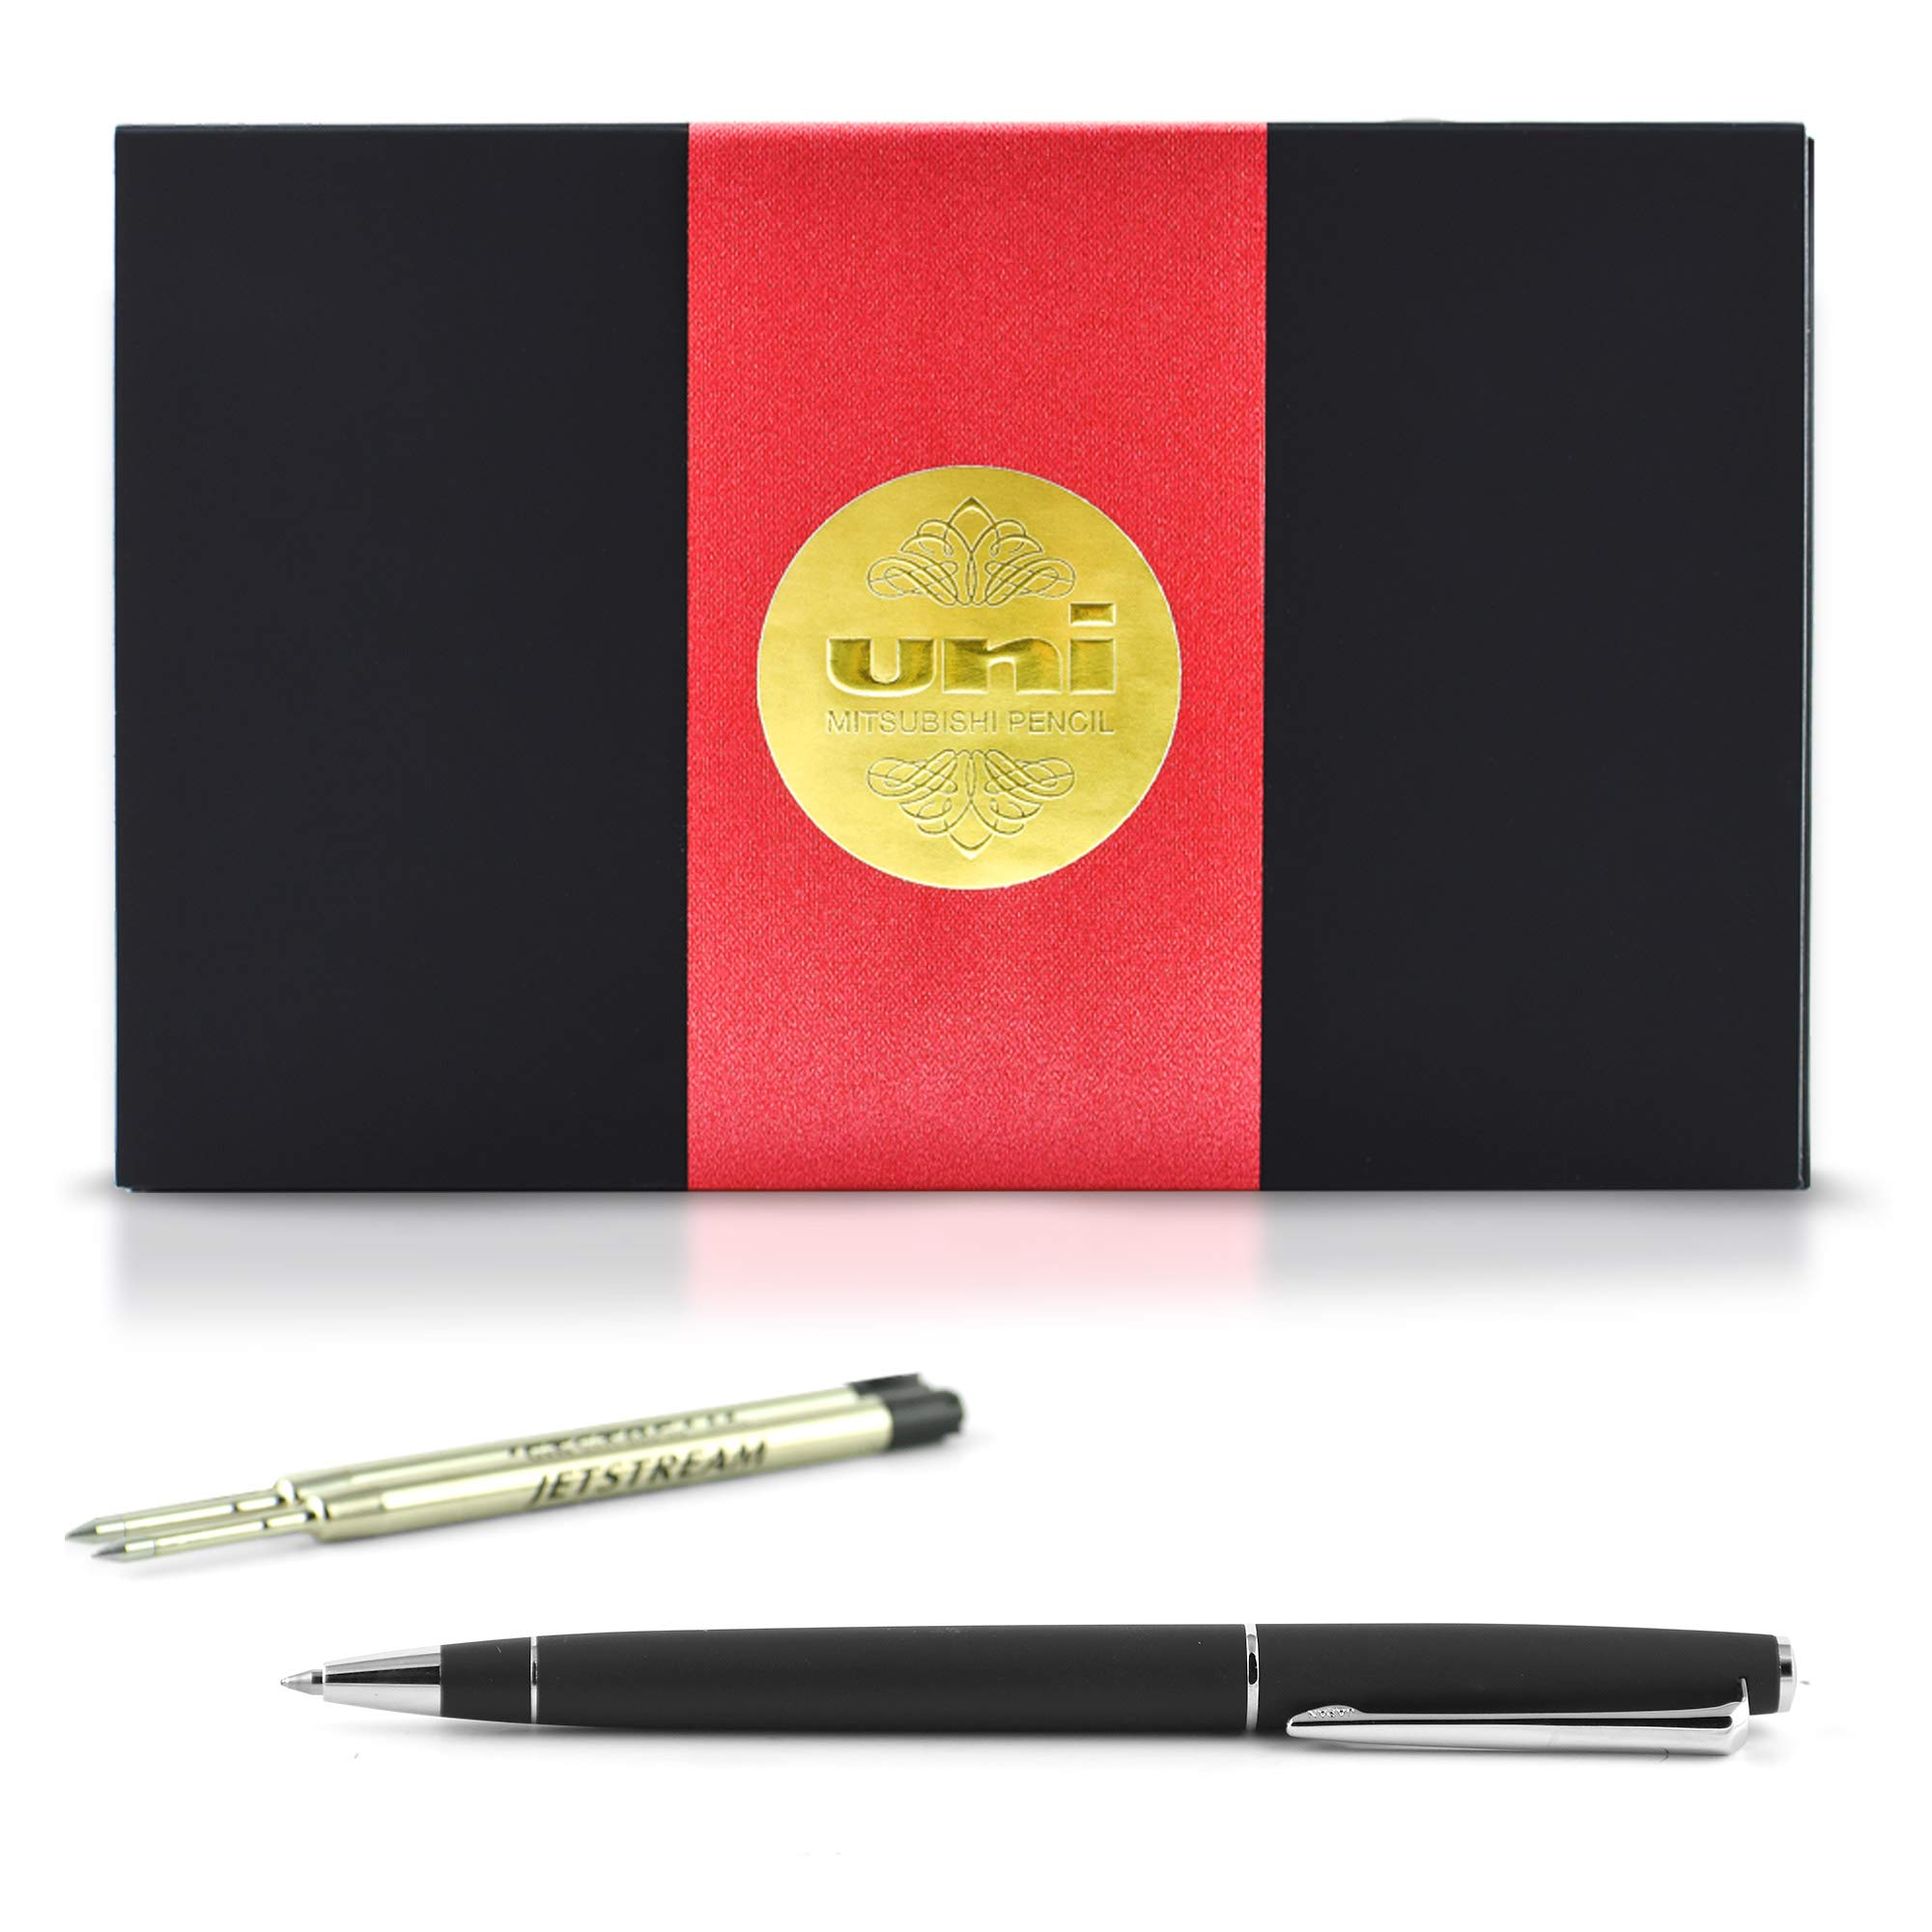 uni JETSTREAM PRIME TWIST - Includes one pen + two Parker Style refills (SXR-600-07) in Exclusive uni Gift Box - Black